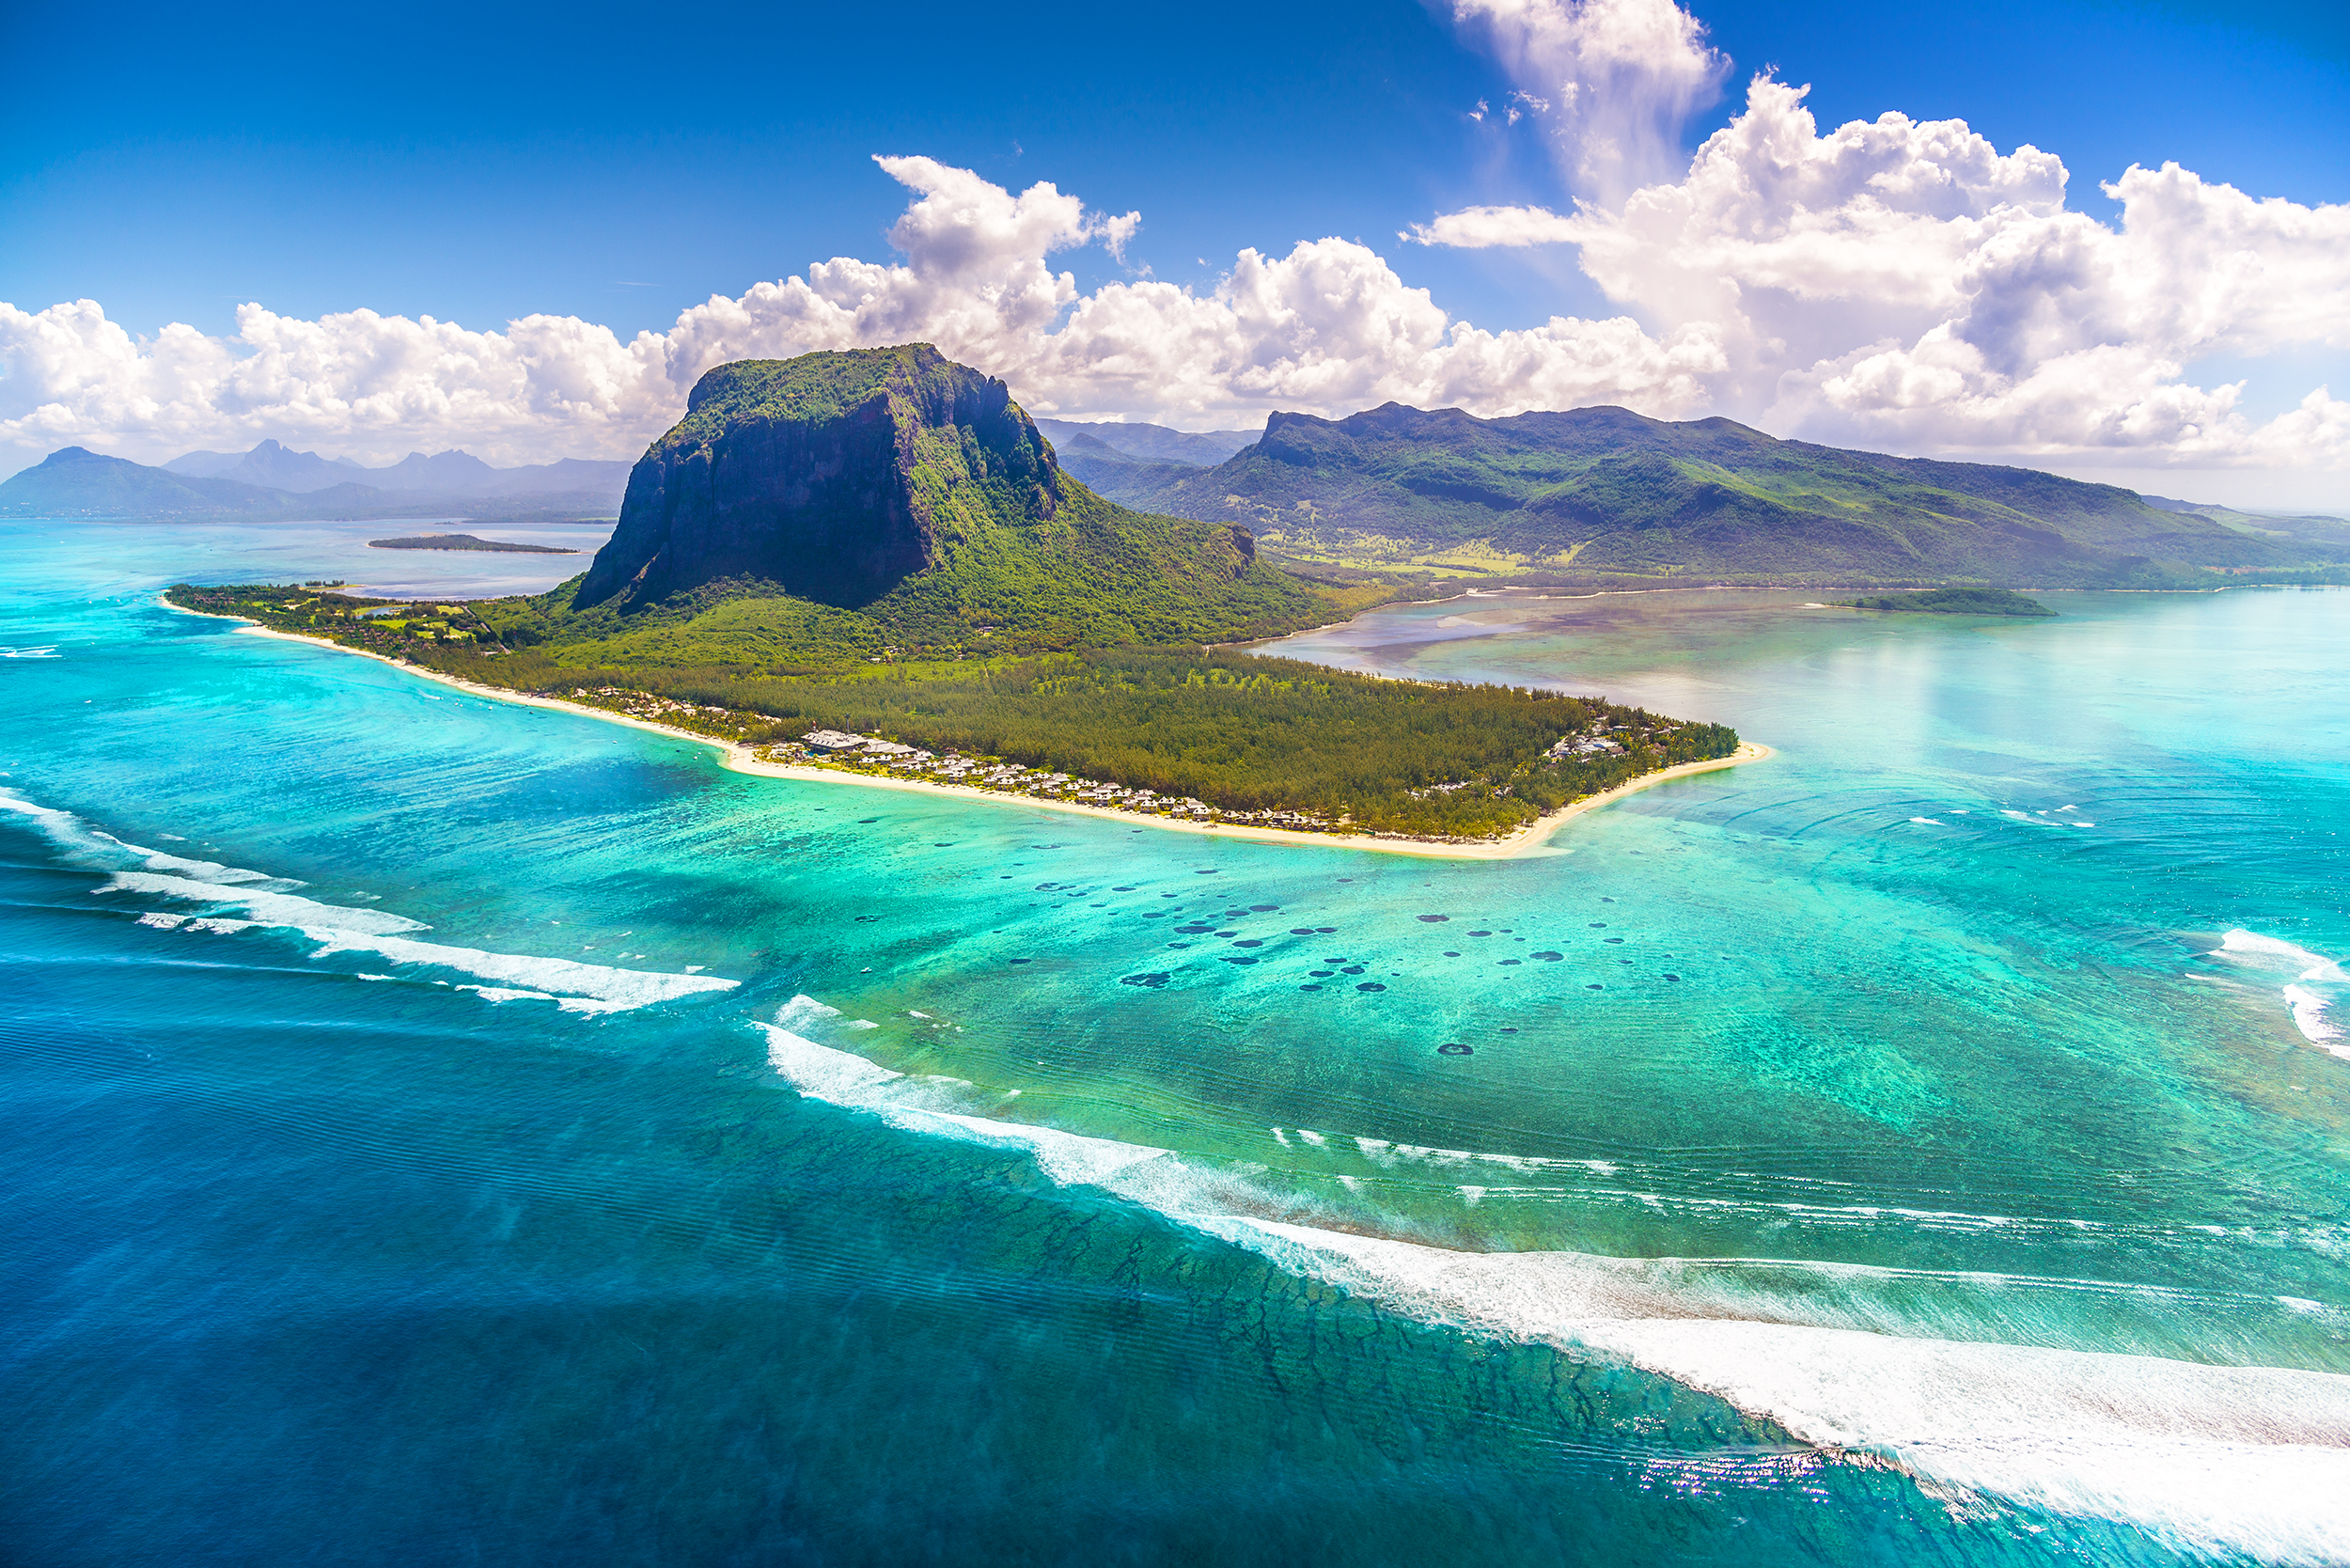 St Regis Mauritius: A tropical idyll where the biggest challenge is deciding how to relax next - Country Life